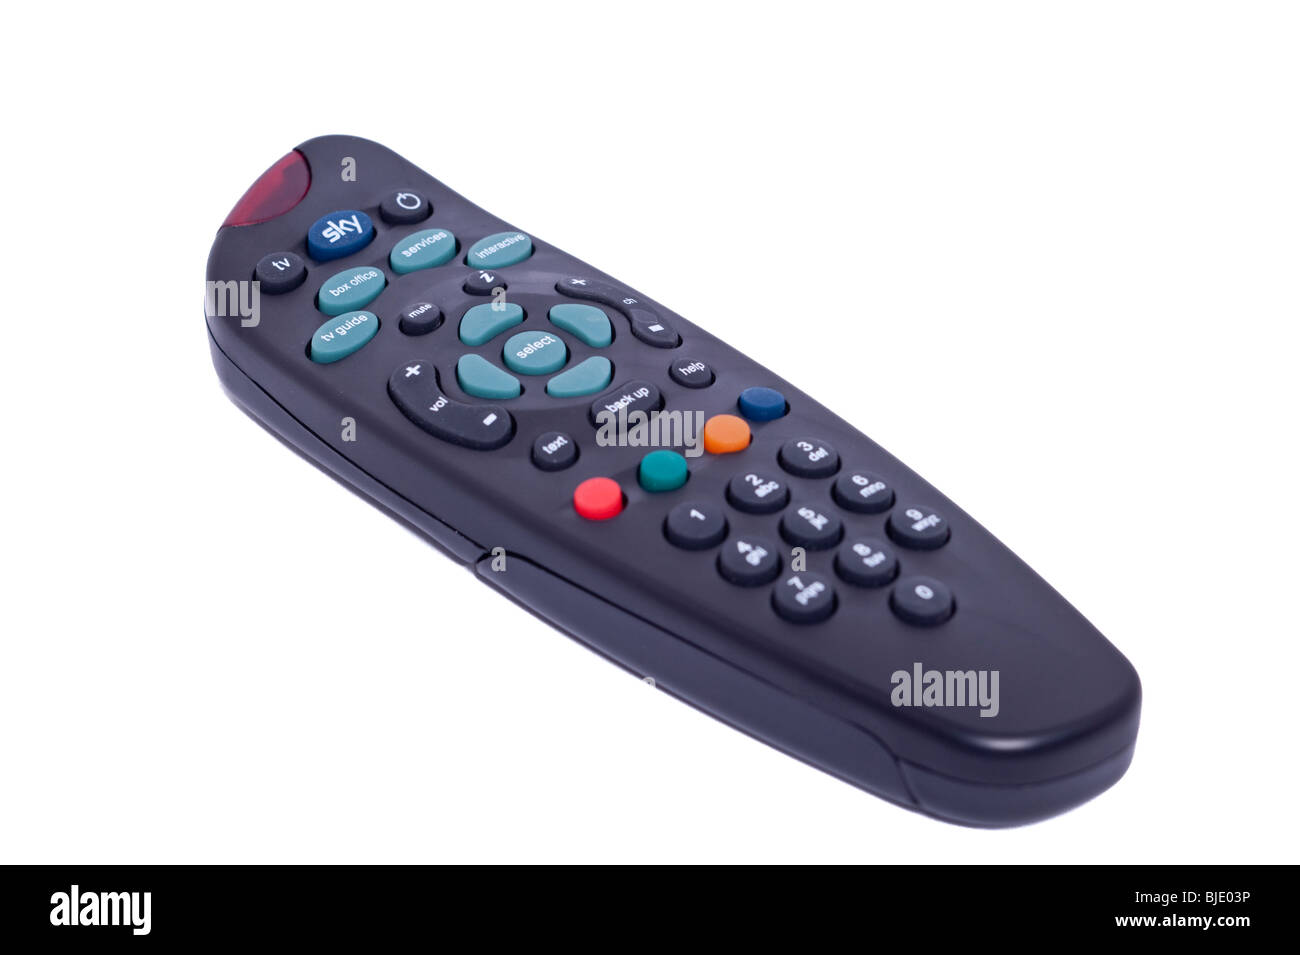 A Sky tv telly remote control on a white background - Stock Image